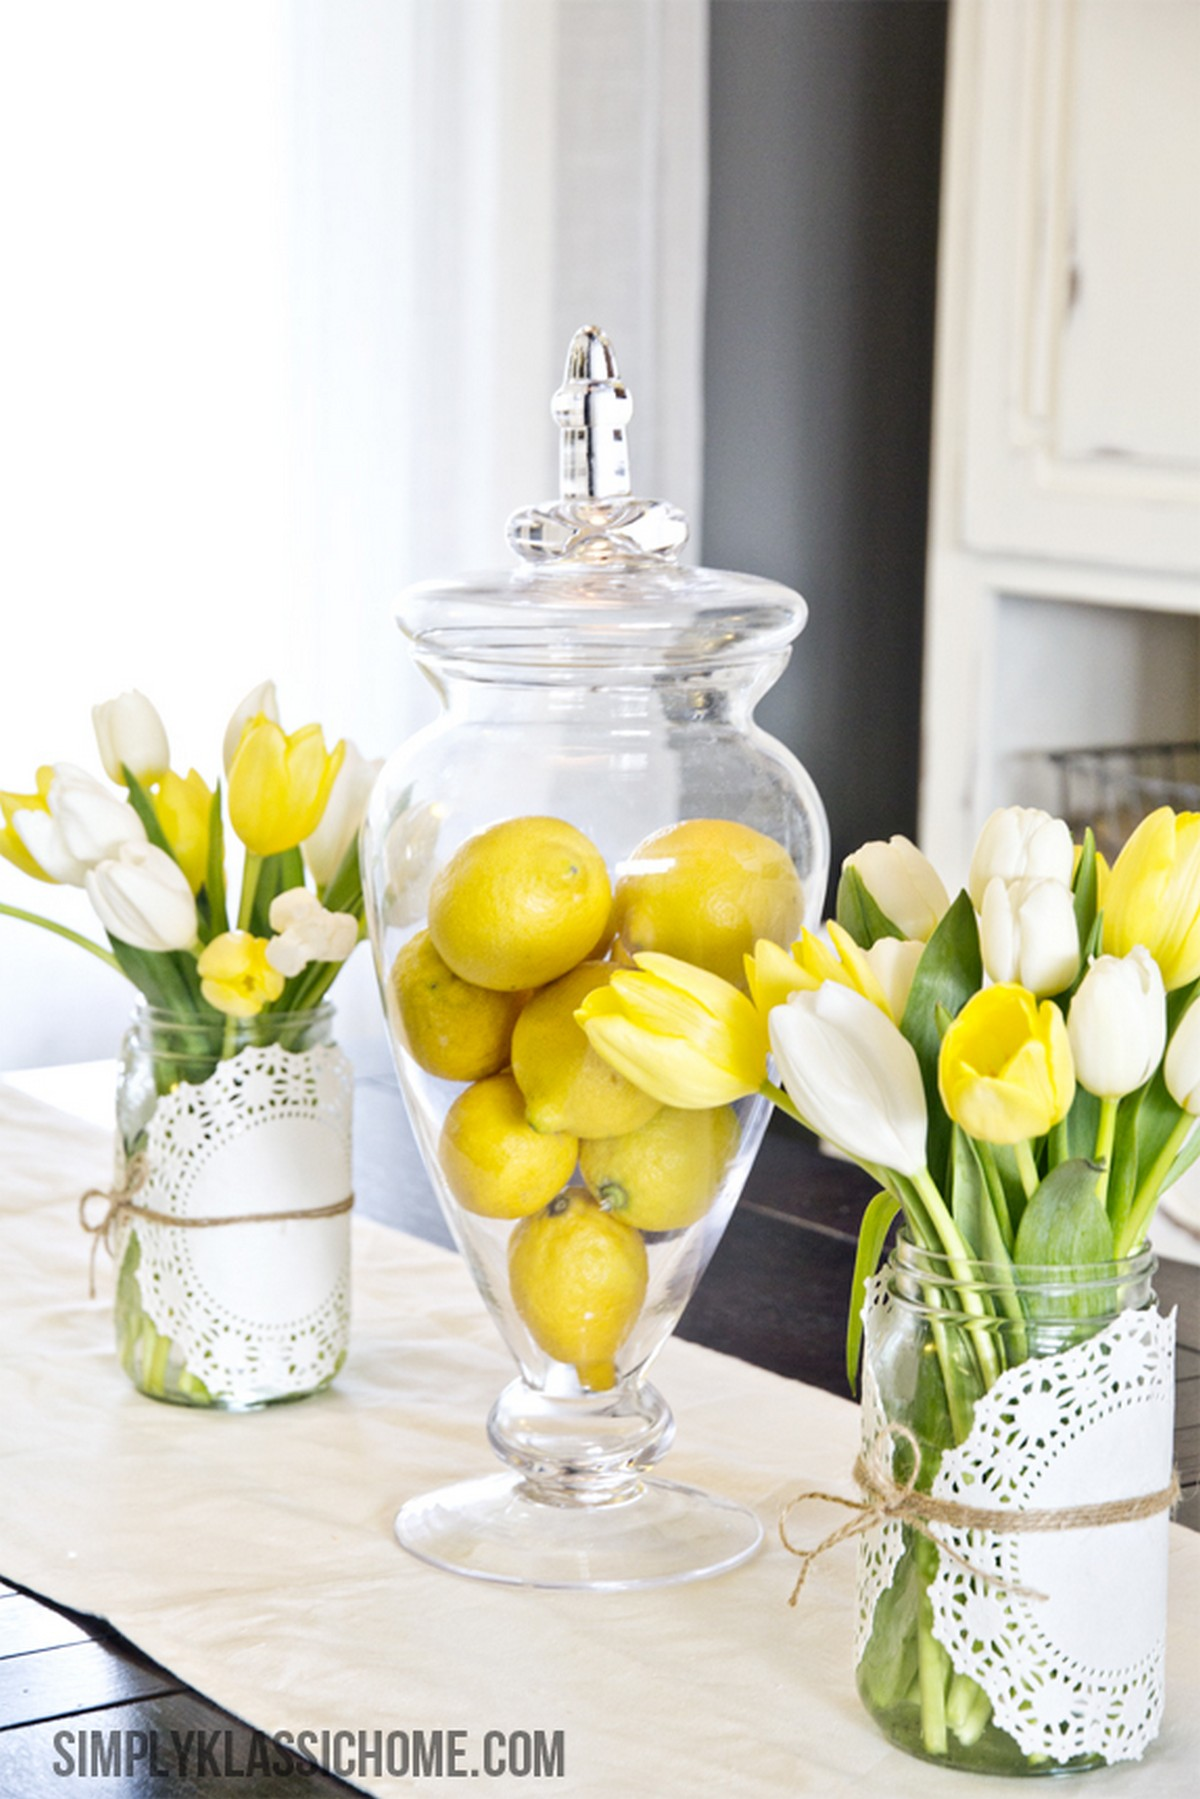 We all love the freshens of this holiday and the colorful Easter egg crafts and chocolate treats.